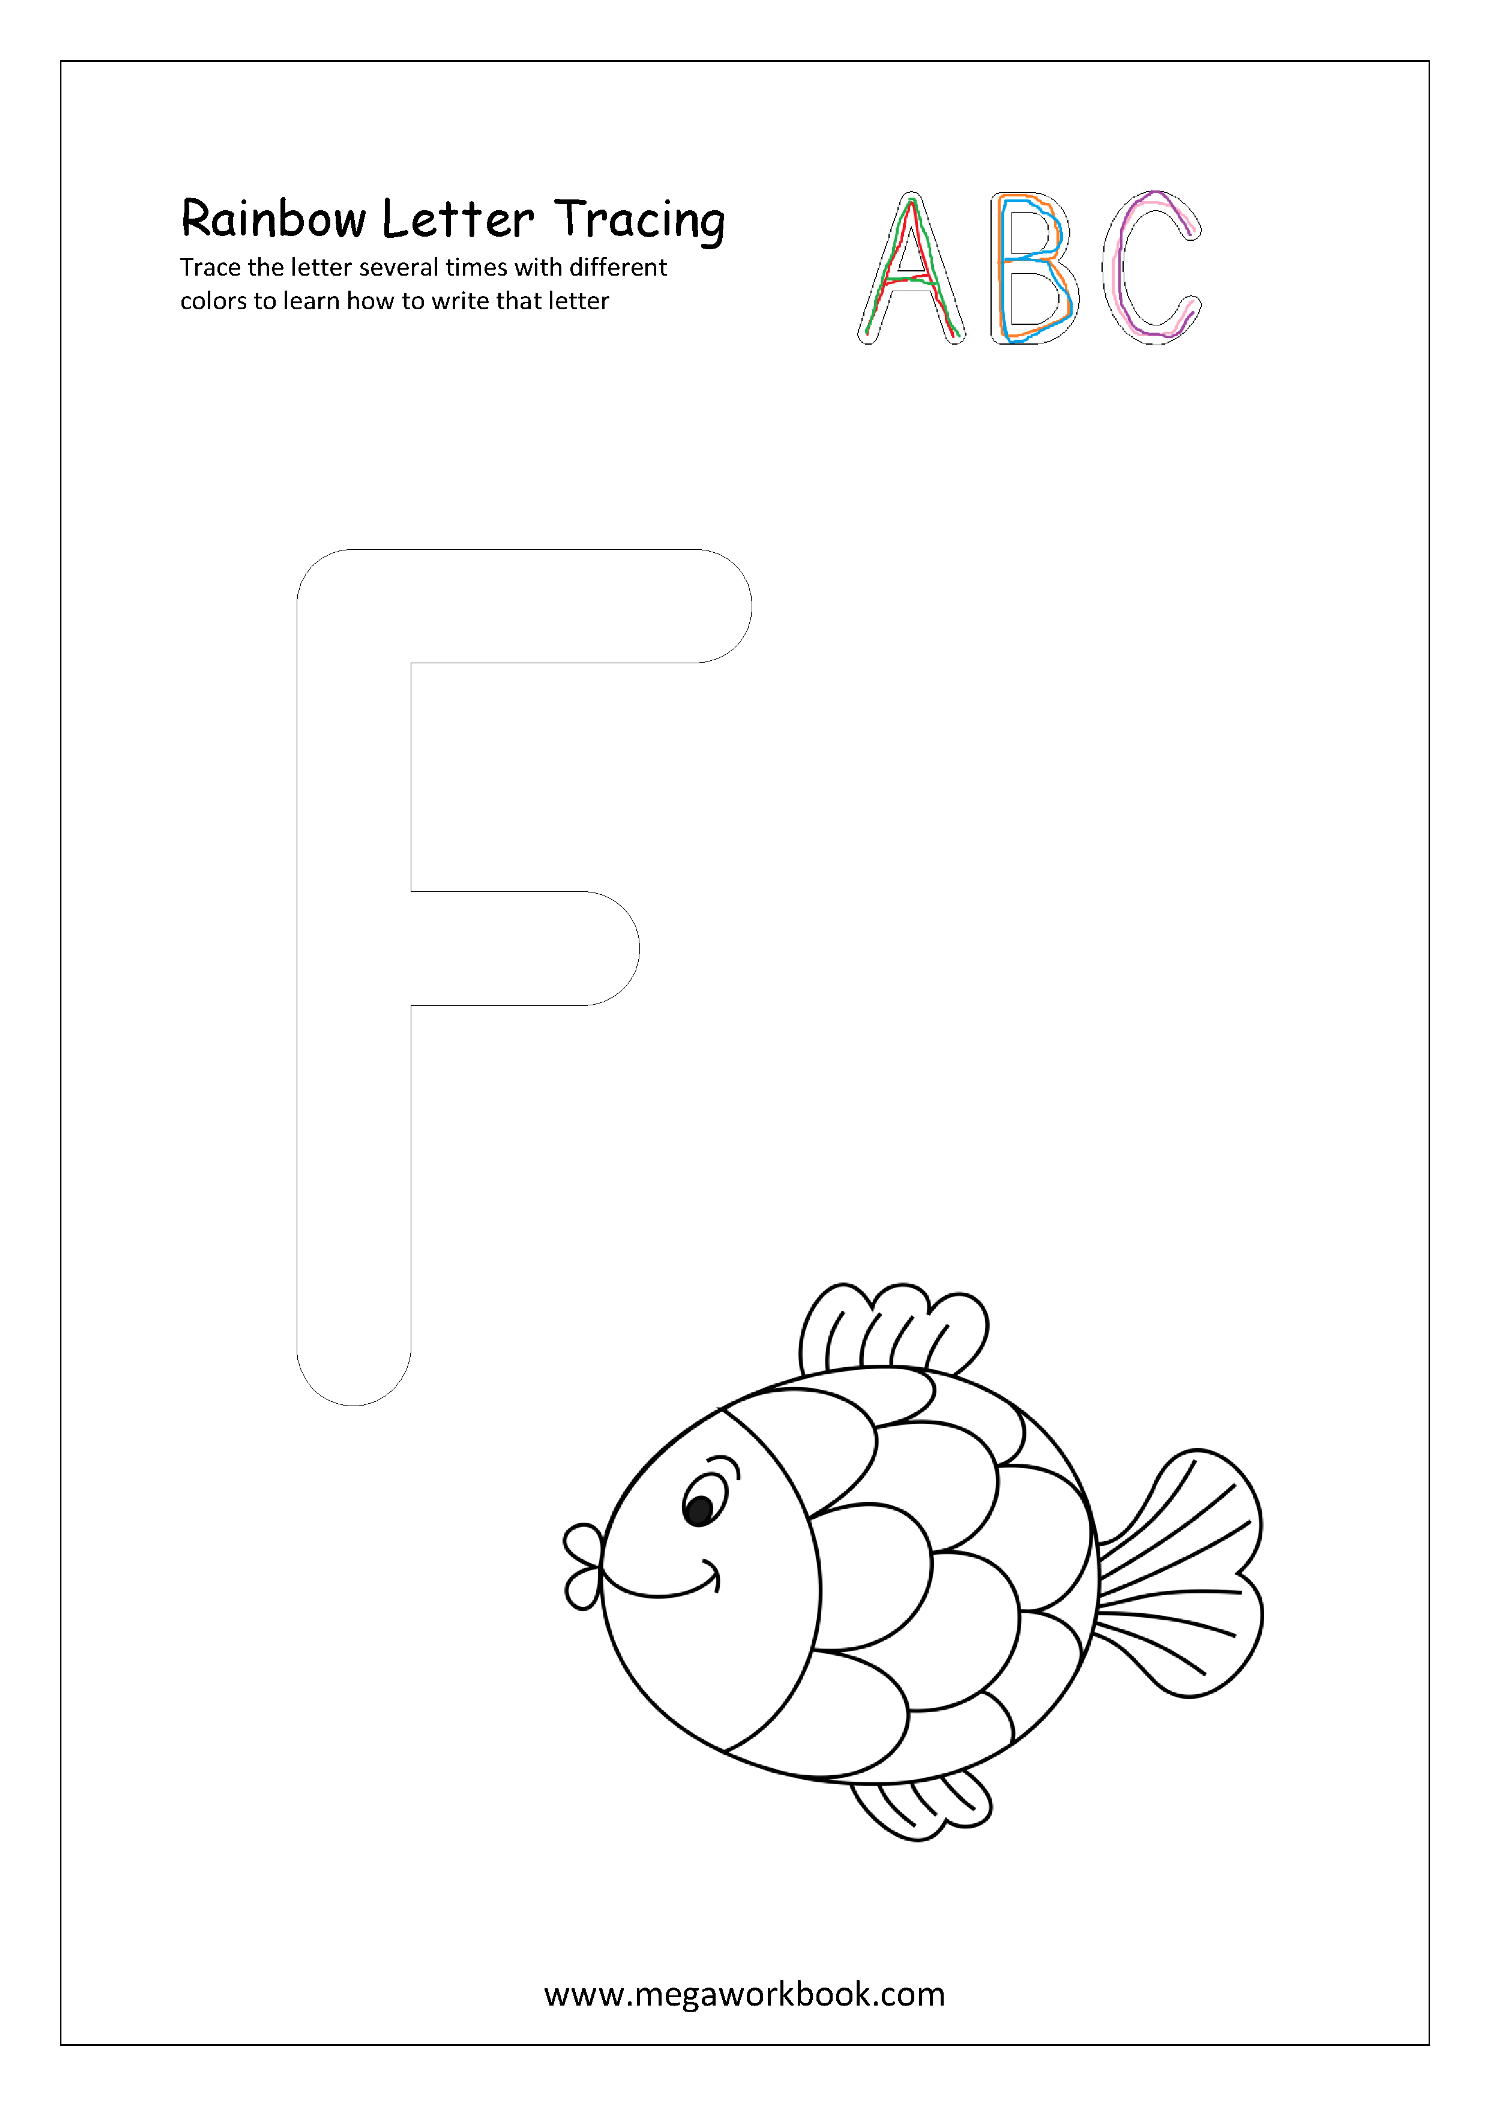 Free Printable Rainbow Writing Worksheets - Rainbow Letter intended for Rainbow Tracing Letters